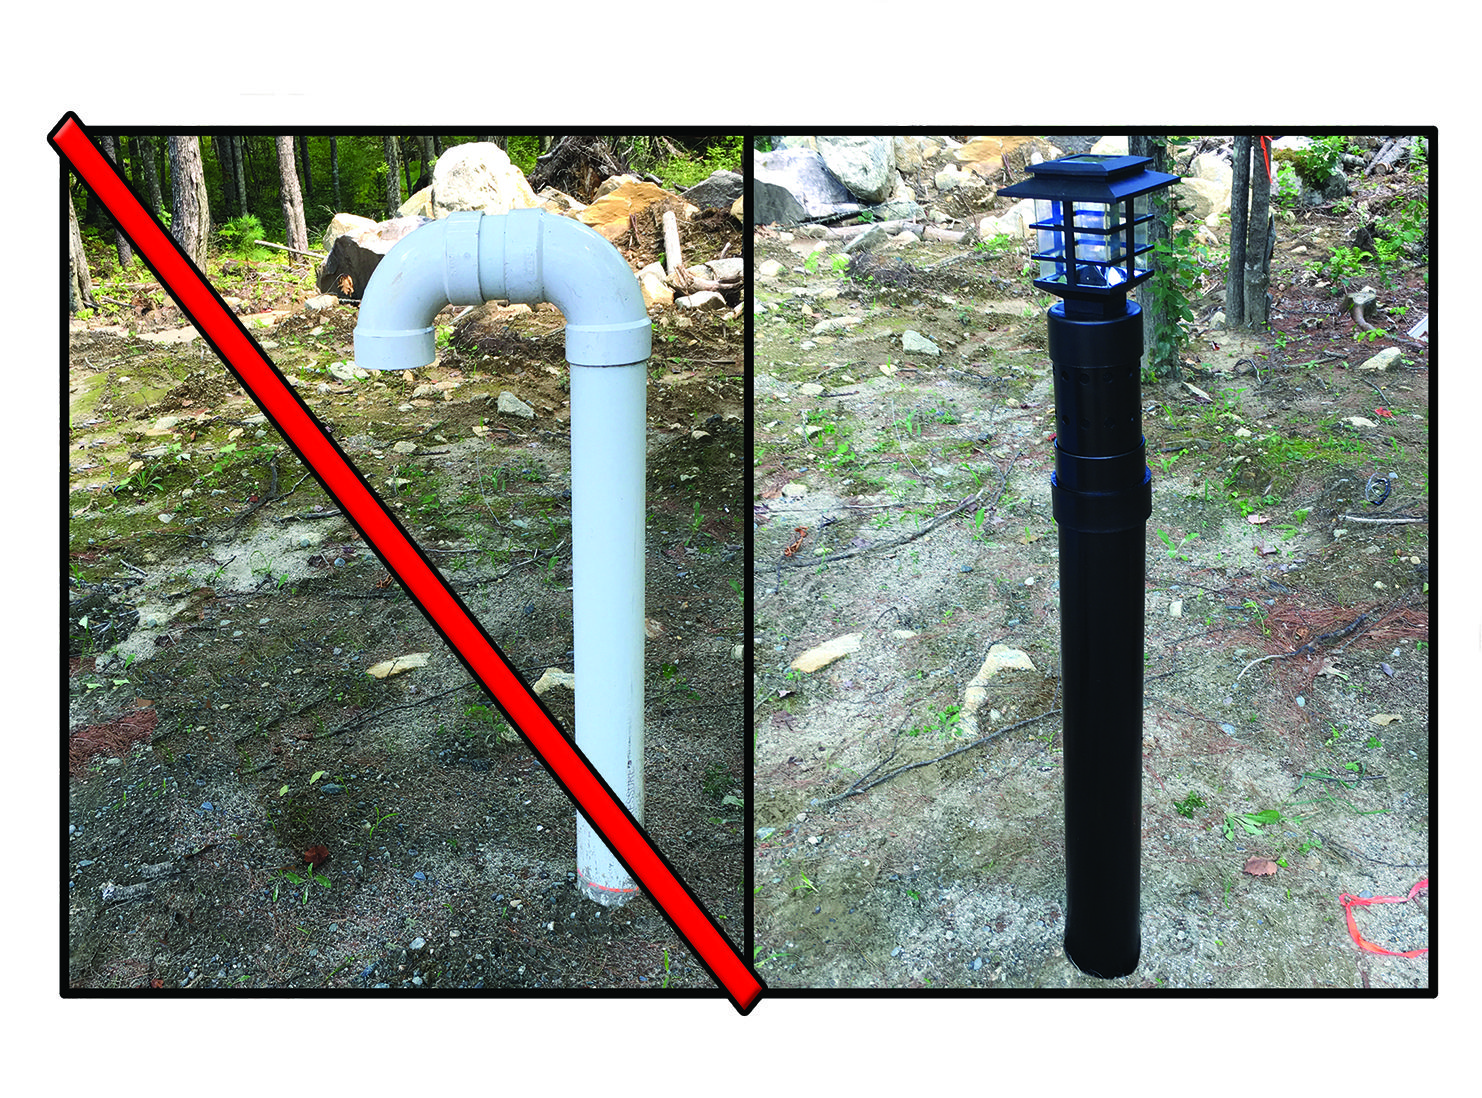 Septic Vent Pipe Covers Zef Jam